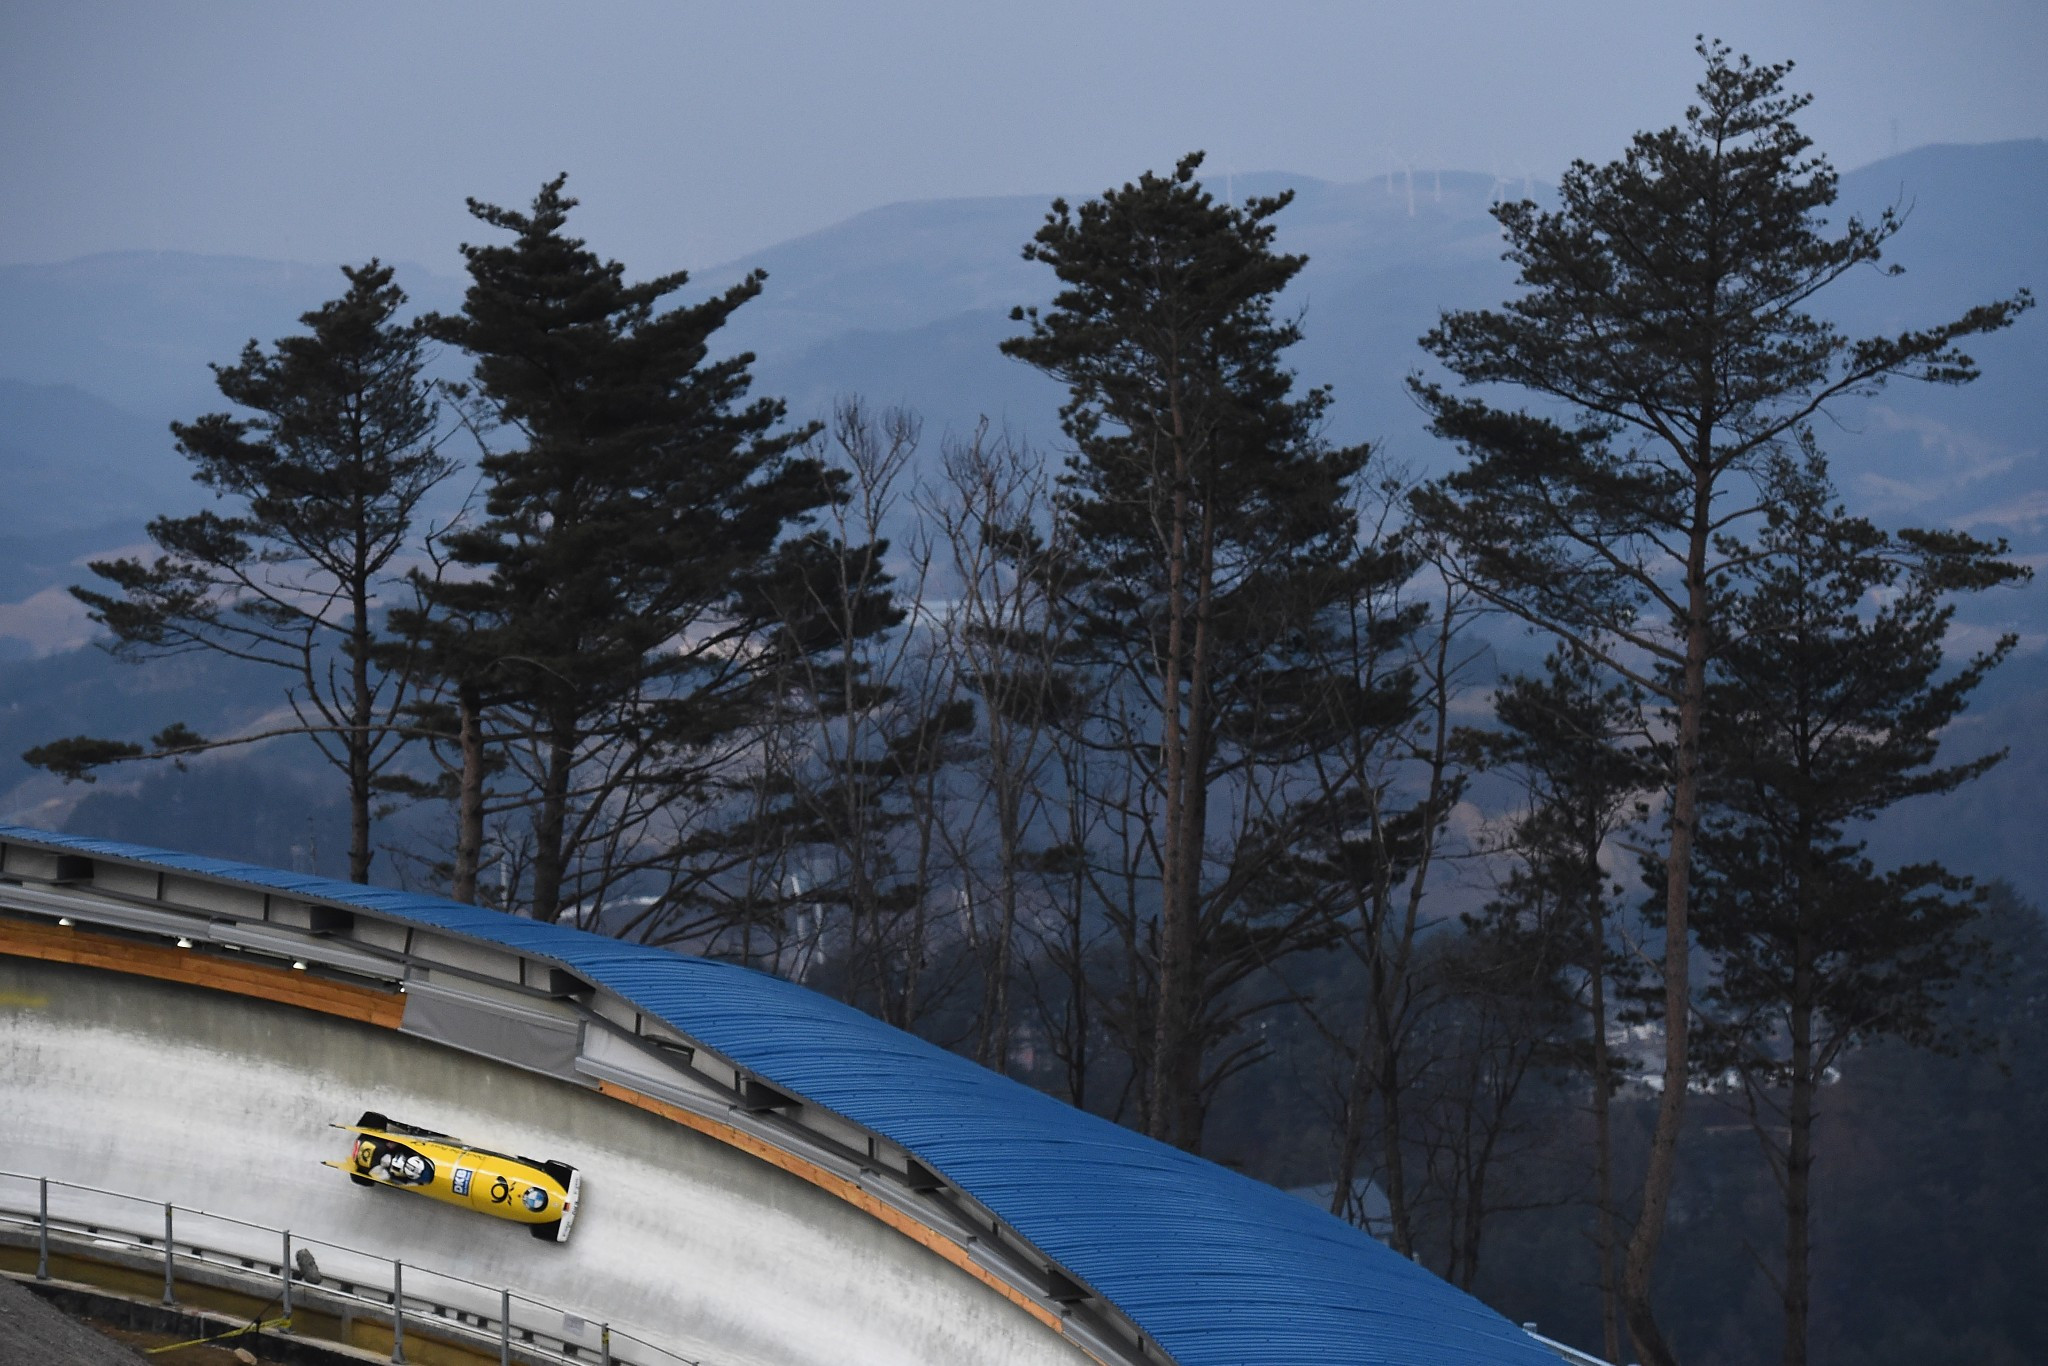 Luge will be held at the Alpensia Sliding Centre at Pyeongchang 2018 ©Getty Images